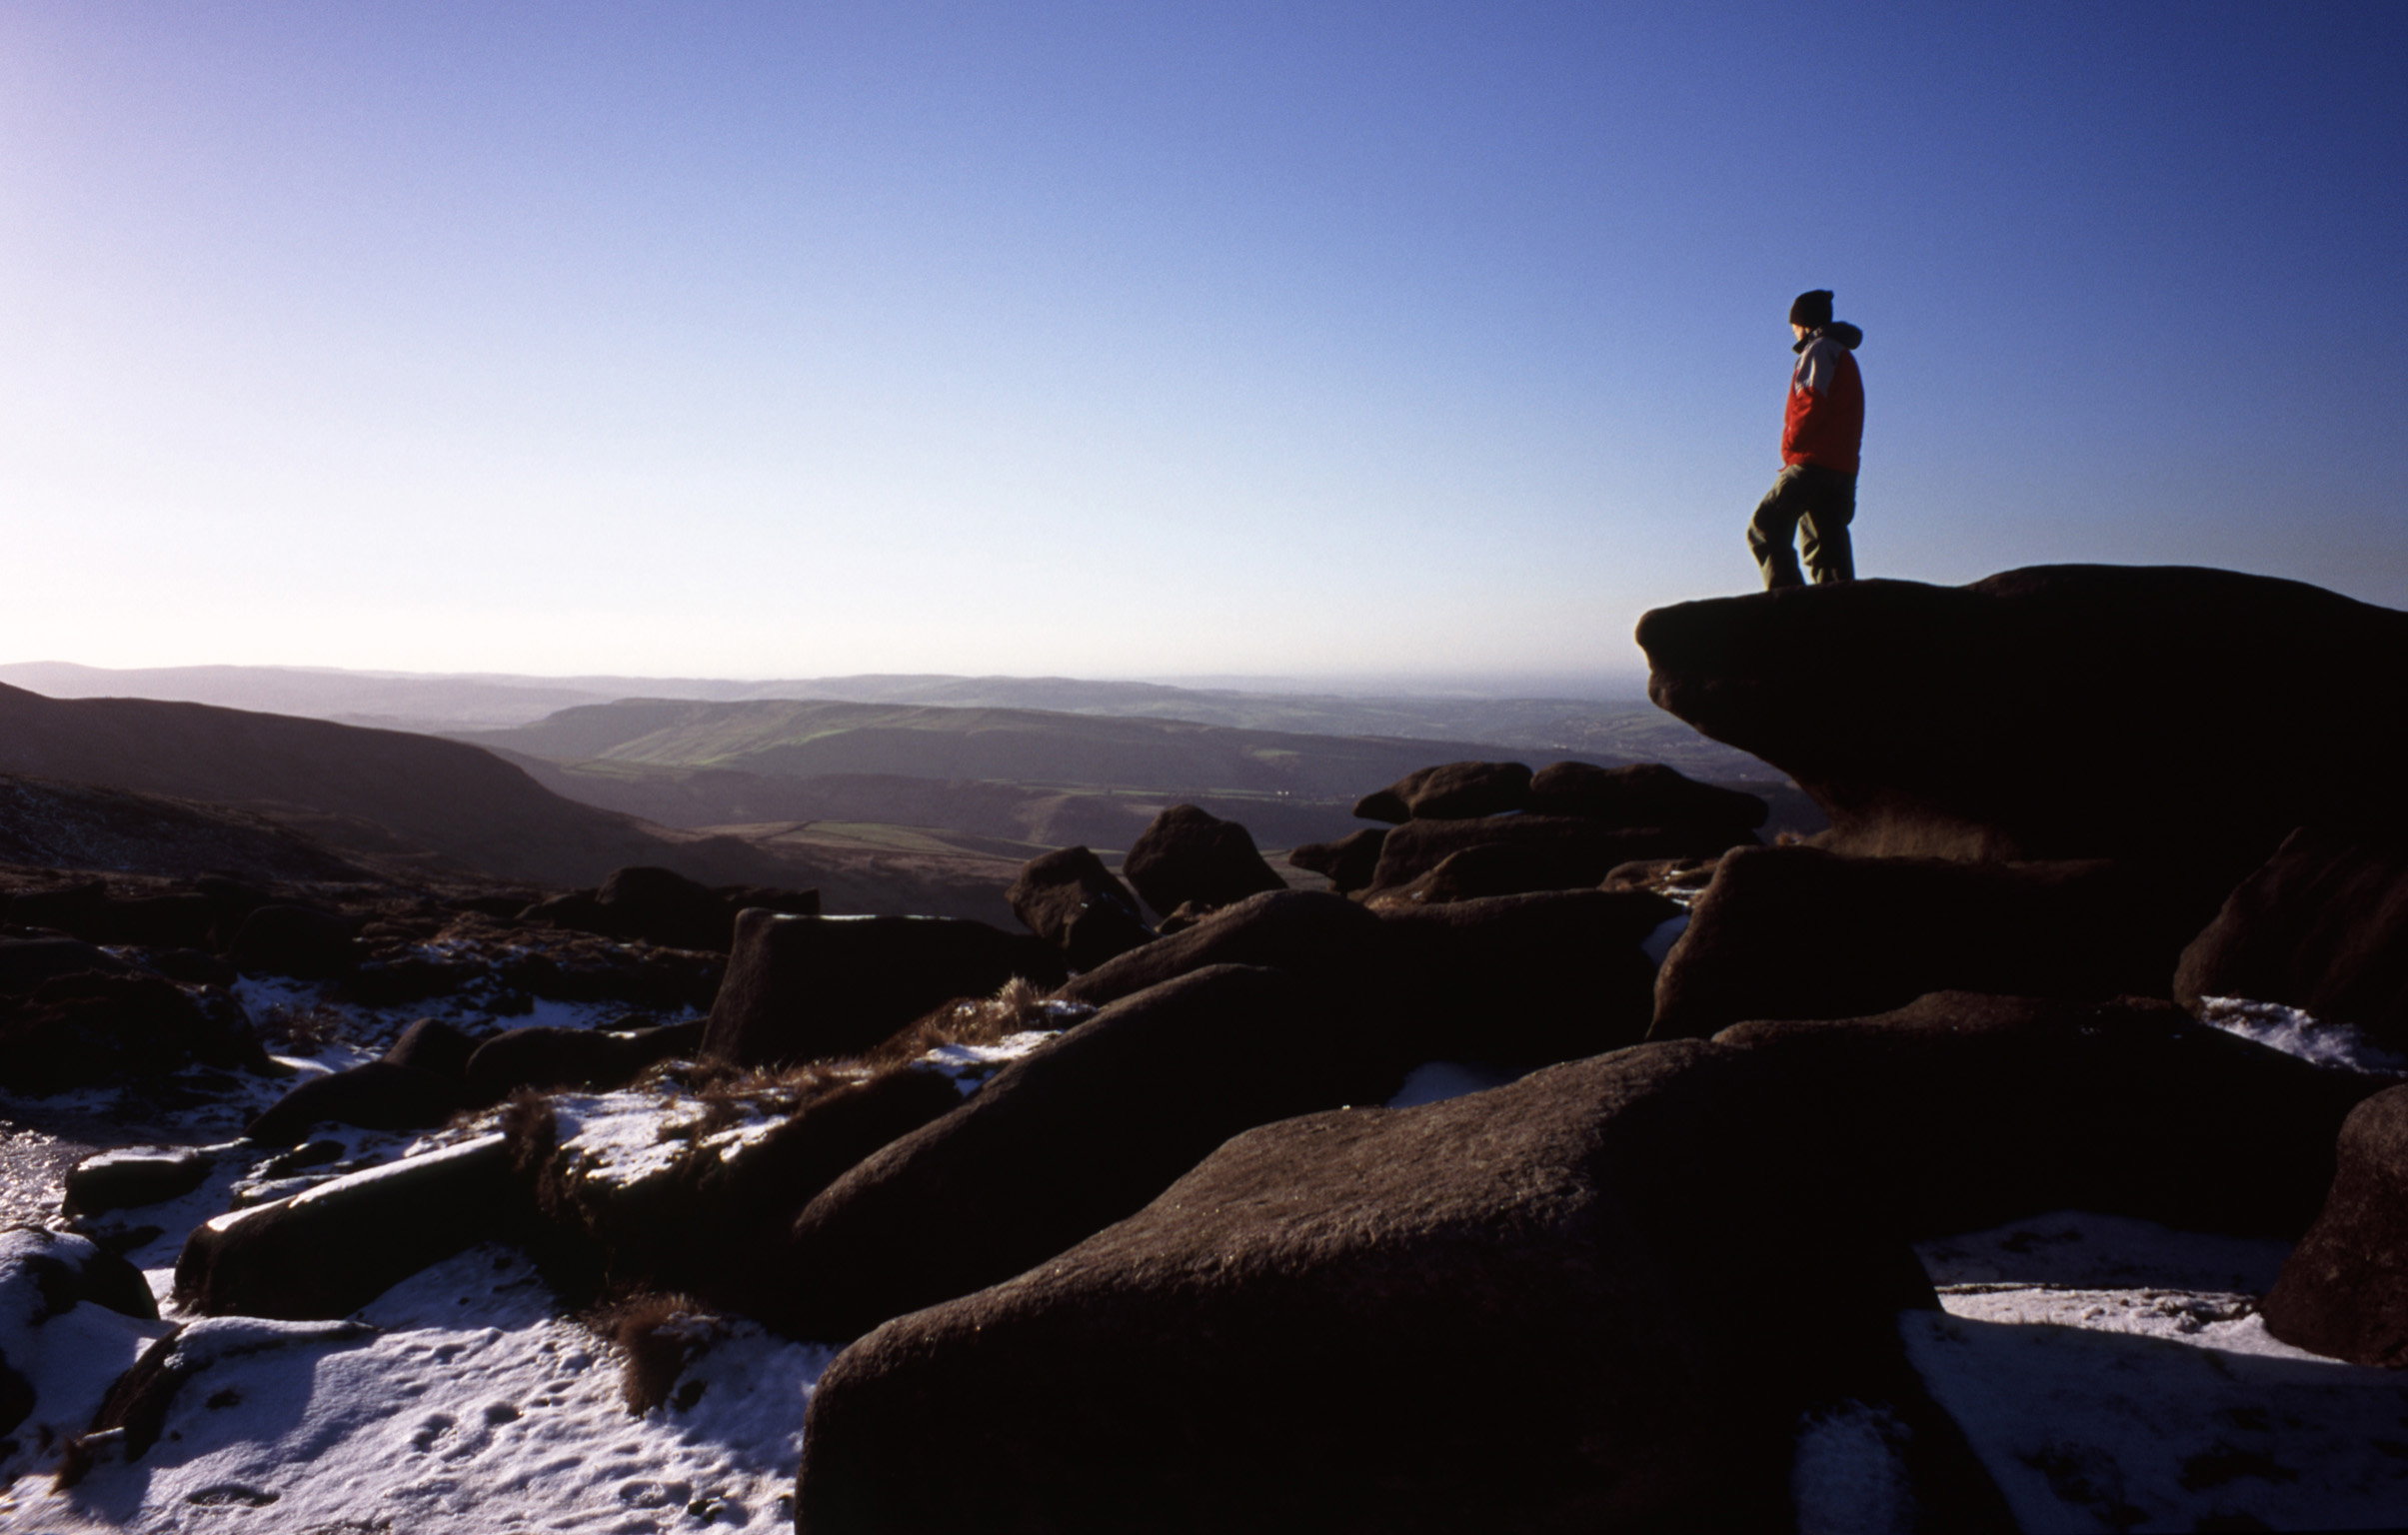 Man hiking on the Kinder Scout Plateau in winter standing on a rocky outcrop admiring the view over the moorlands in the Derbyshire Peak District